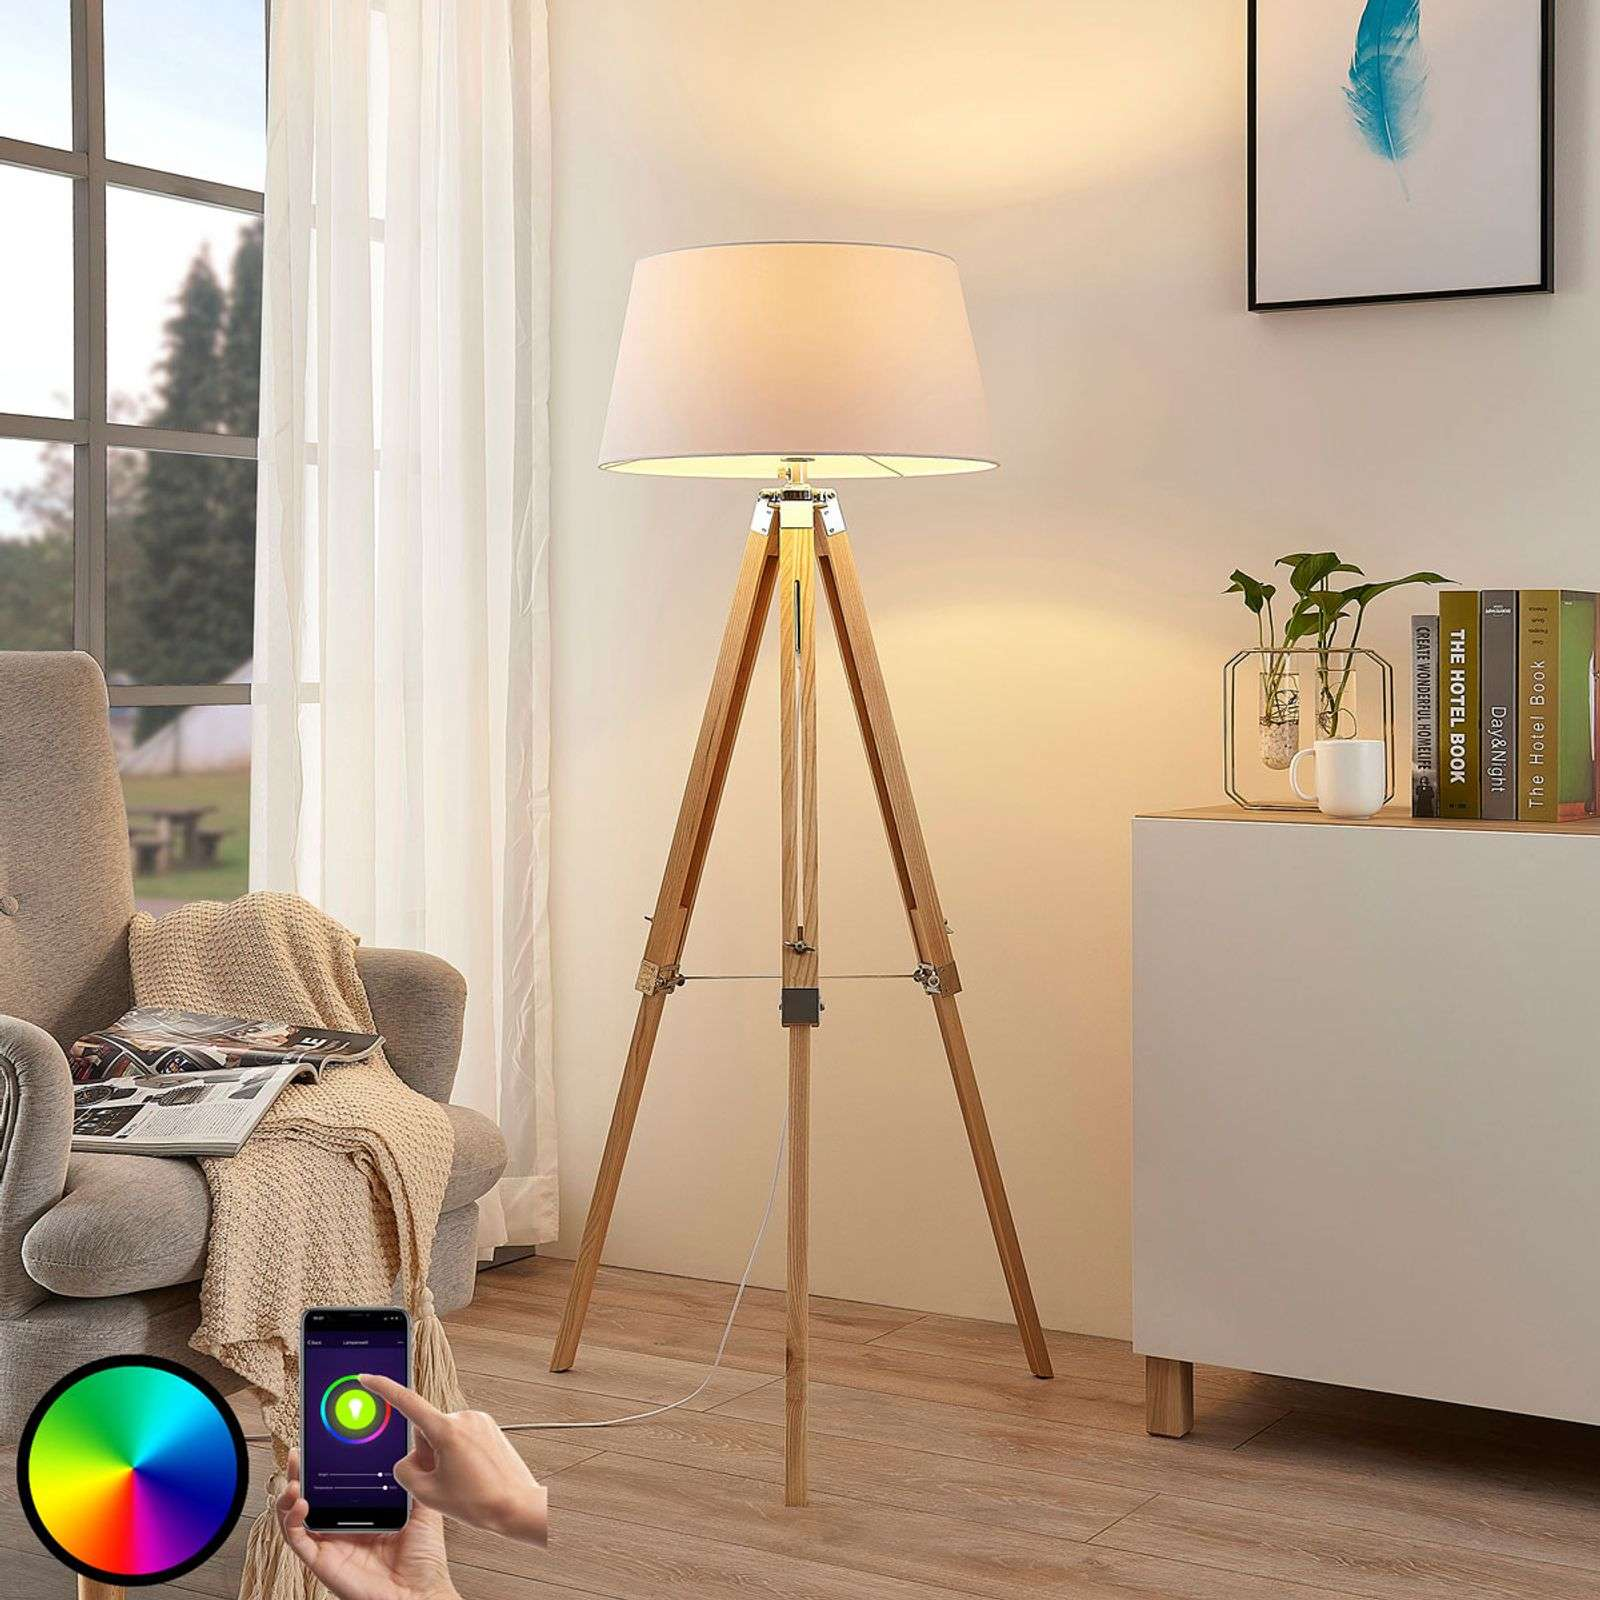 Lampadaire LED Alessa trépied, RVB et application